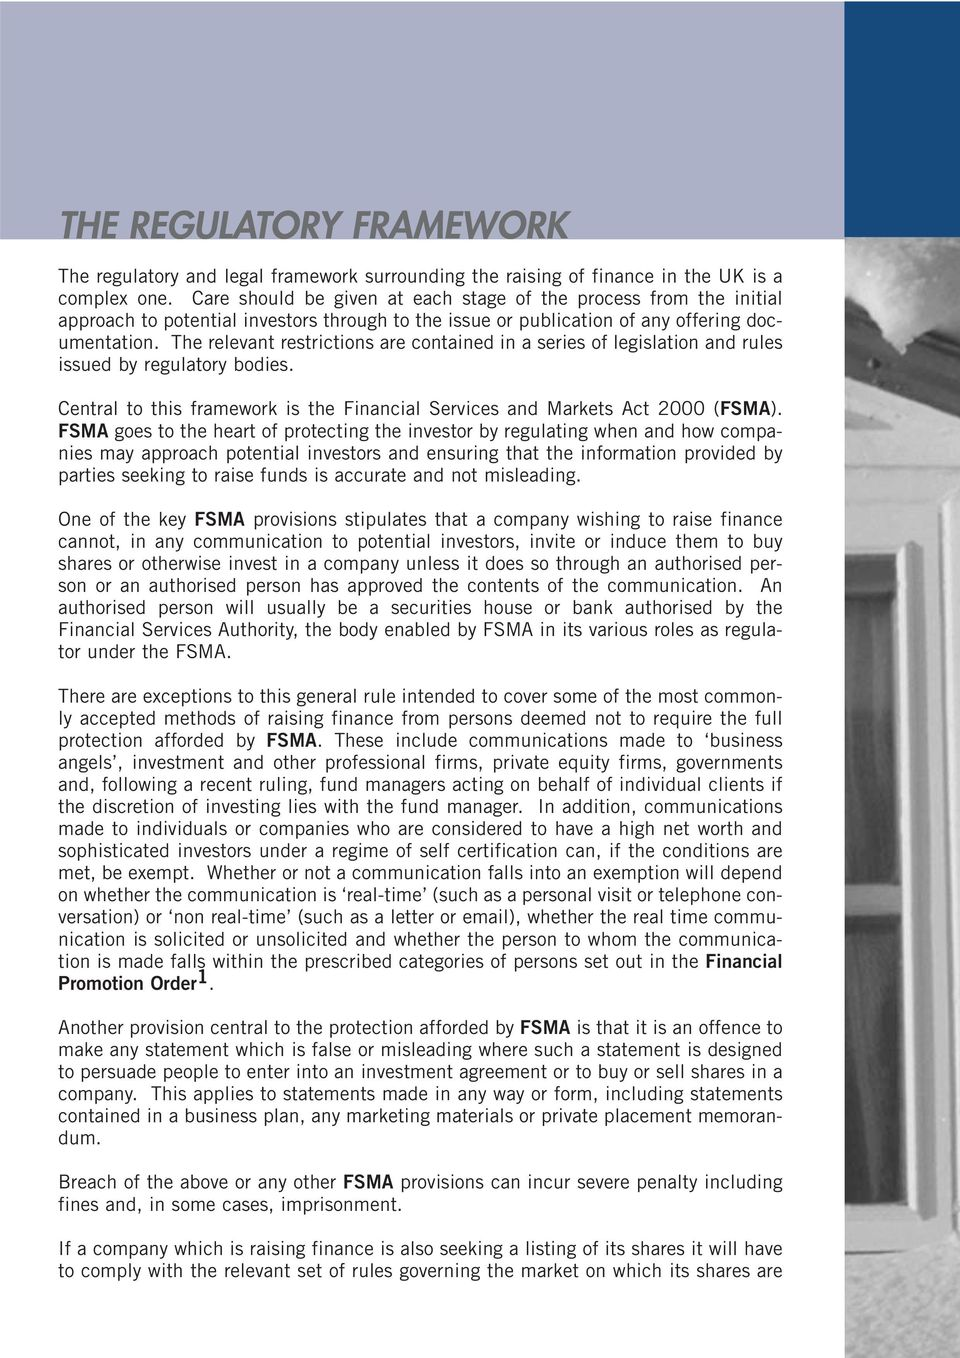 The relevant restrictions are contained in a series of legislation and rules issued by regulatory bodies. Central to this framework is the Financial Services and Markets Act 2000 (FSMA).